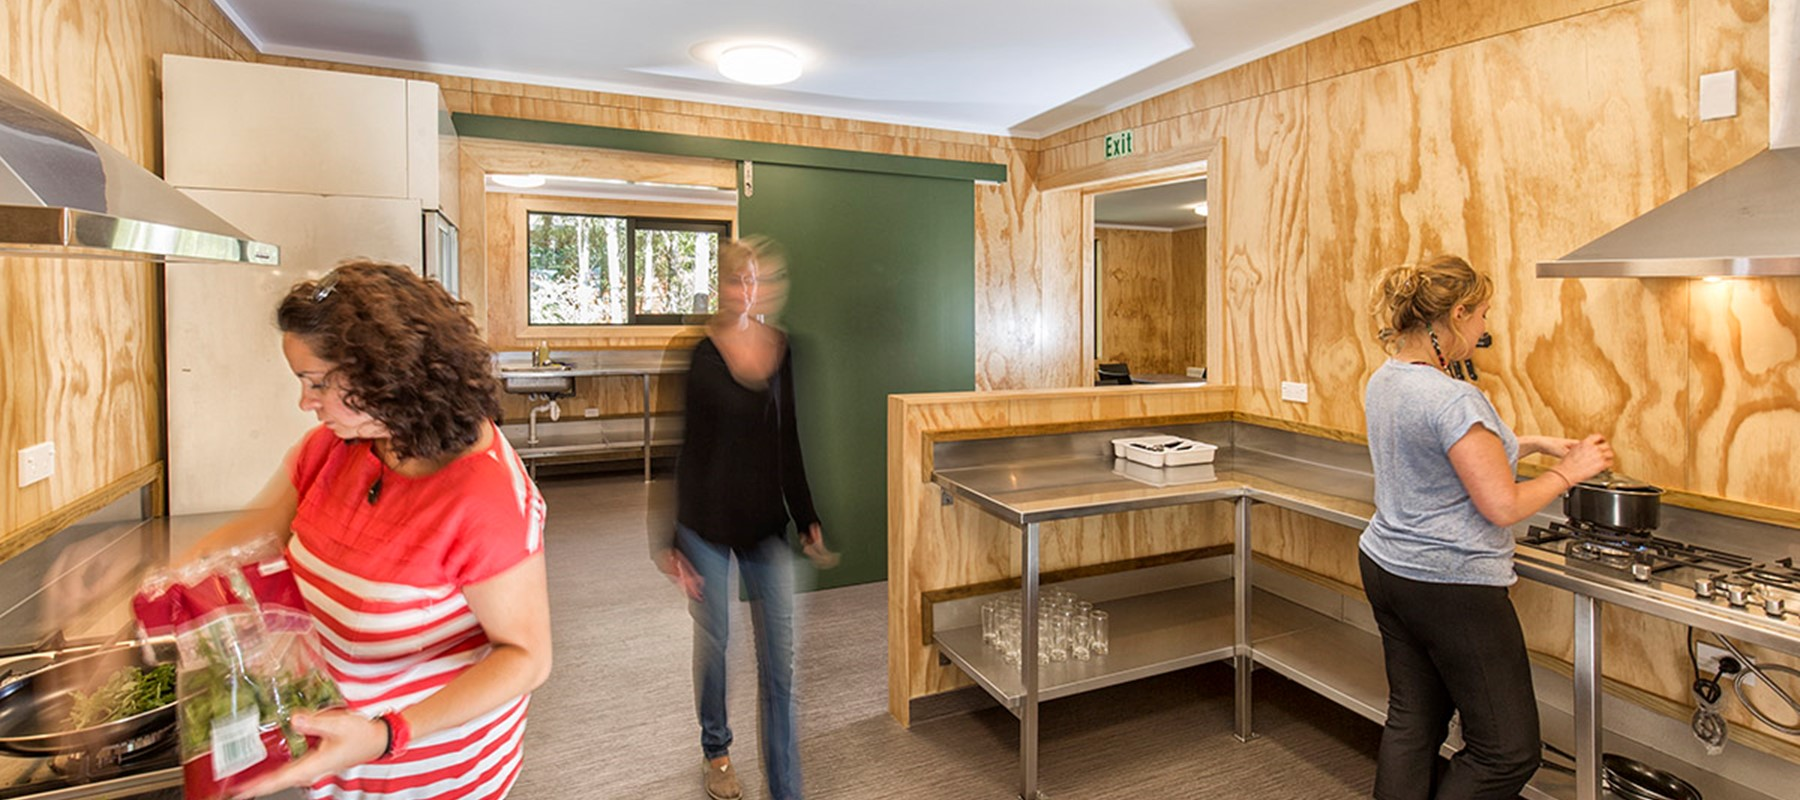 Patrons use the Milford Sound Lodge guest kitchen after hiking the Milford Track.